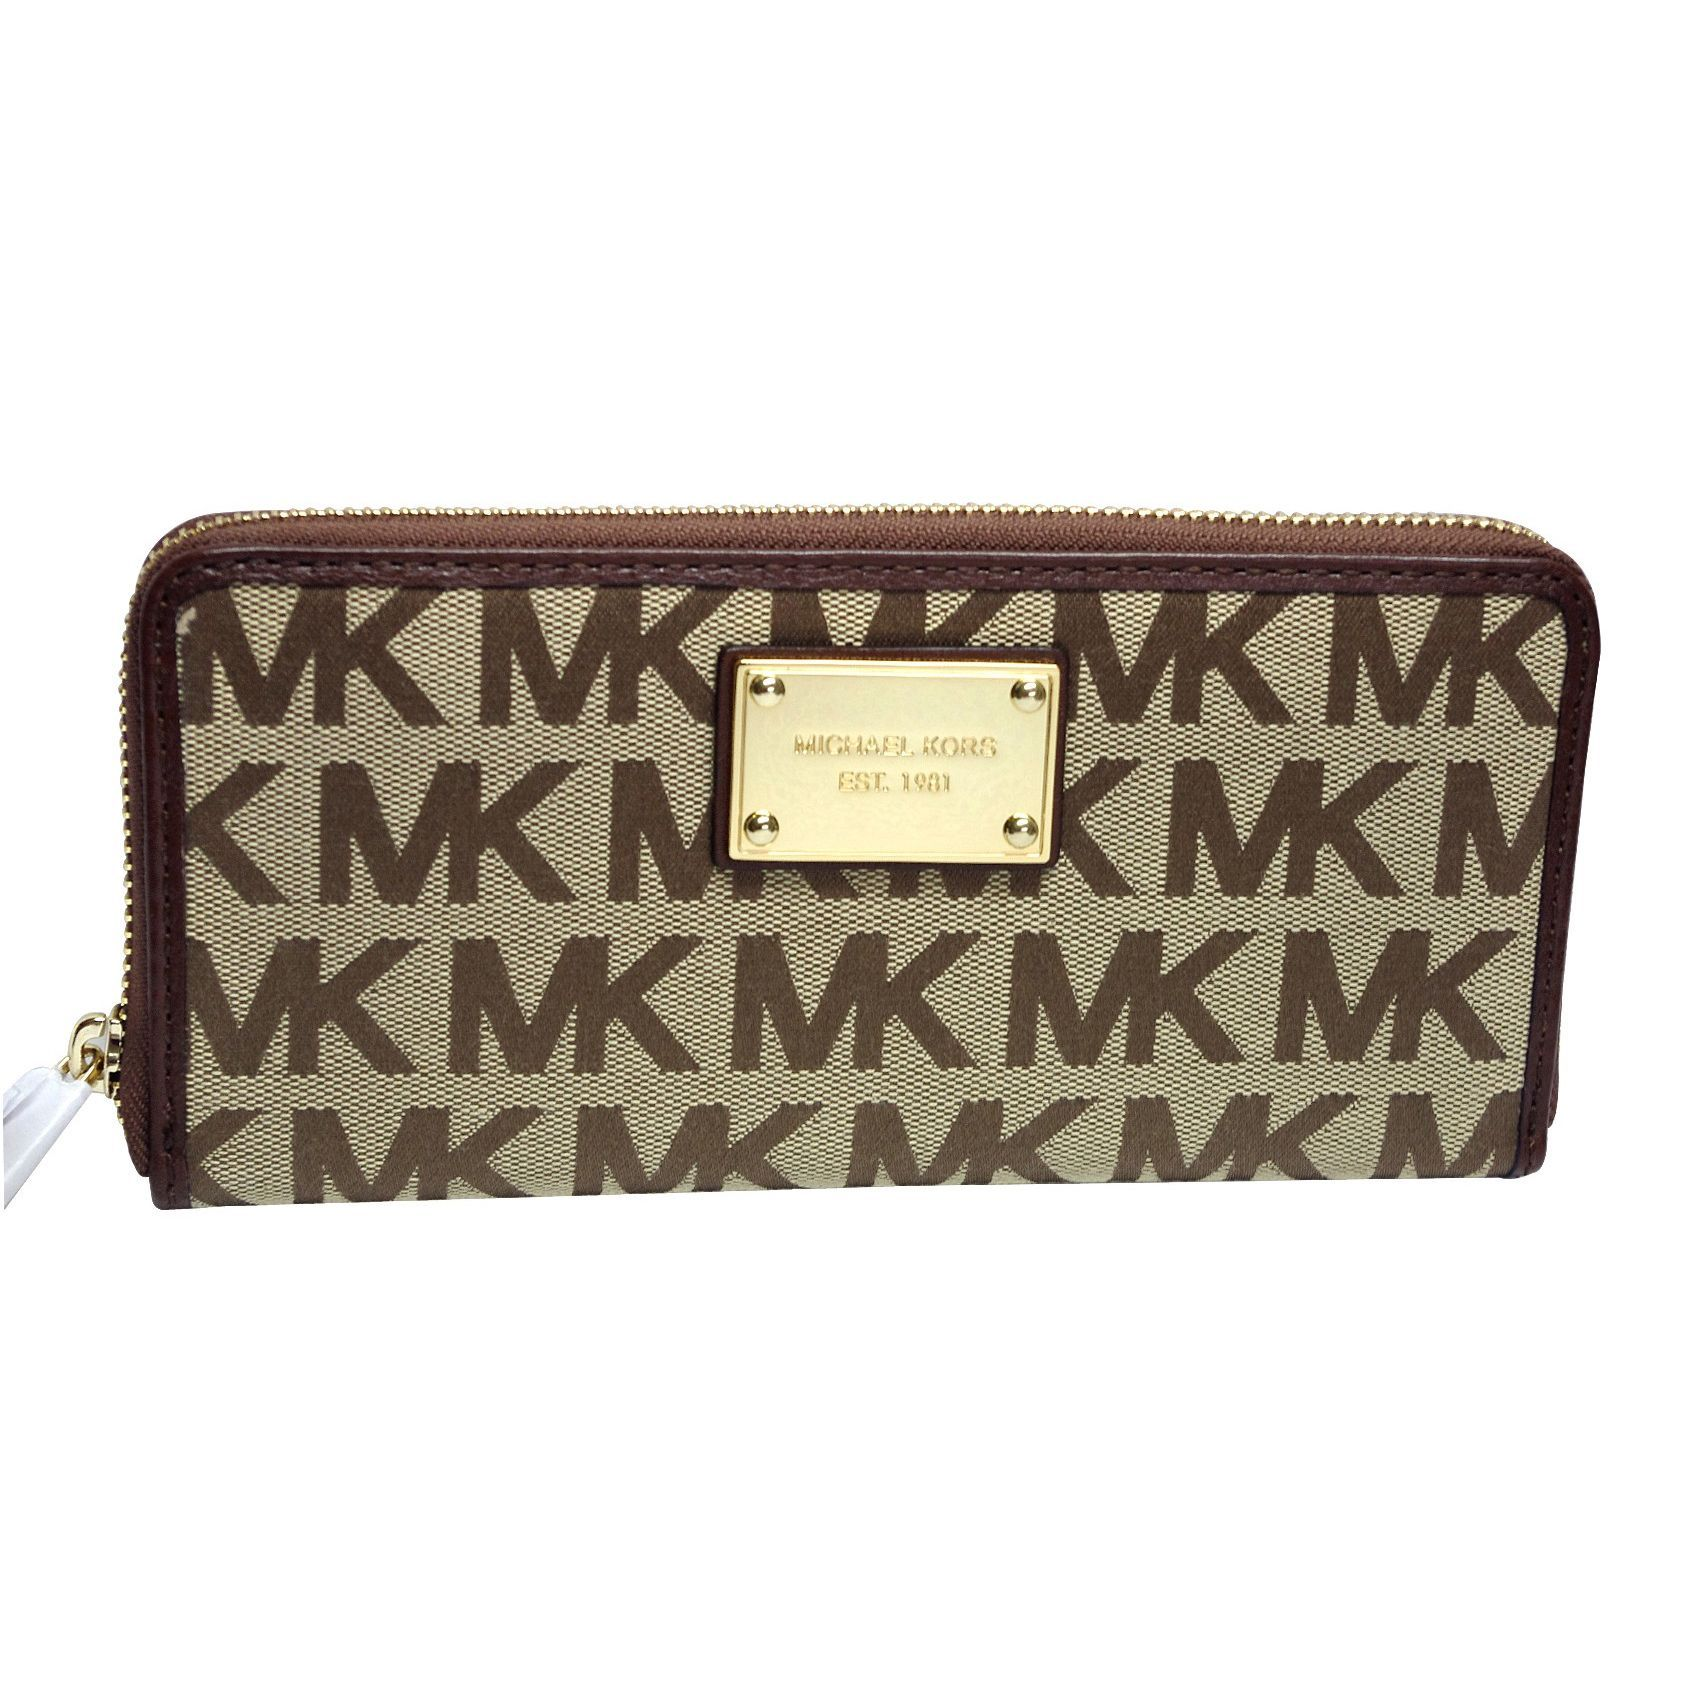 Cute wallet to go with all the purses I've pinned! Nice deal right now. http://www.overstock.com/8344266/product.html?CID=245307